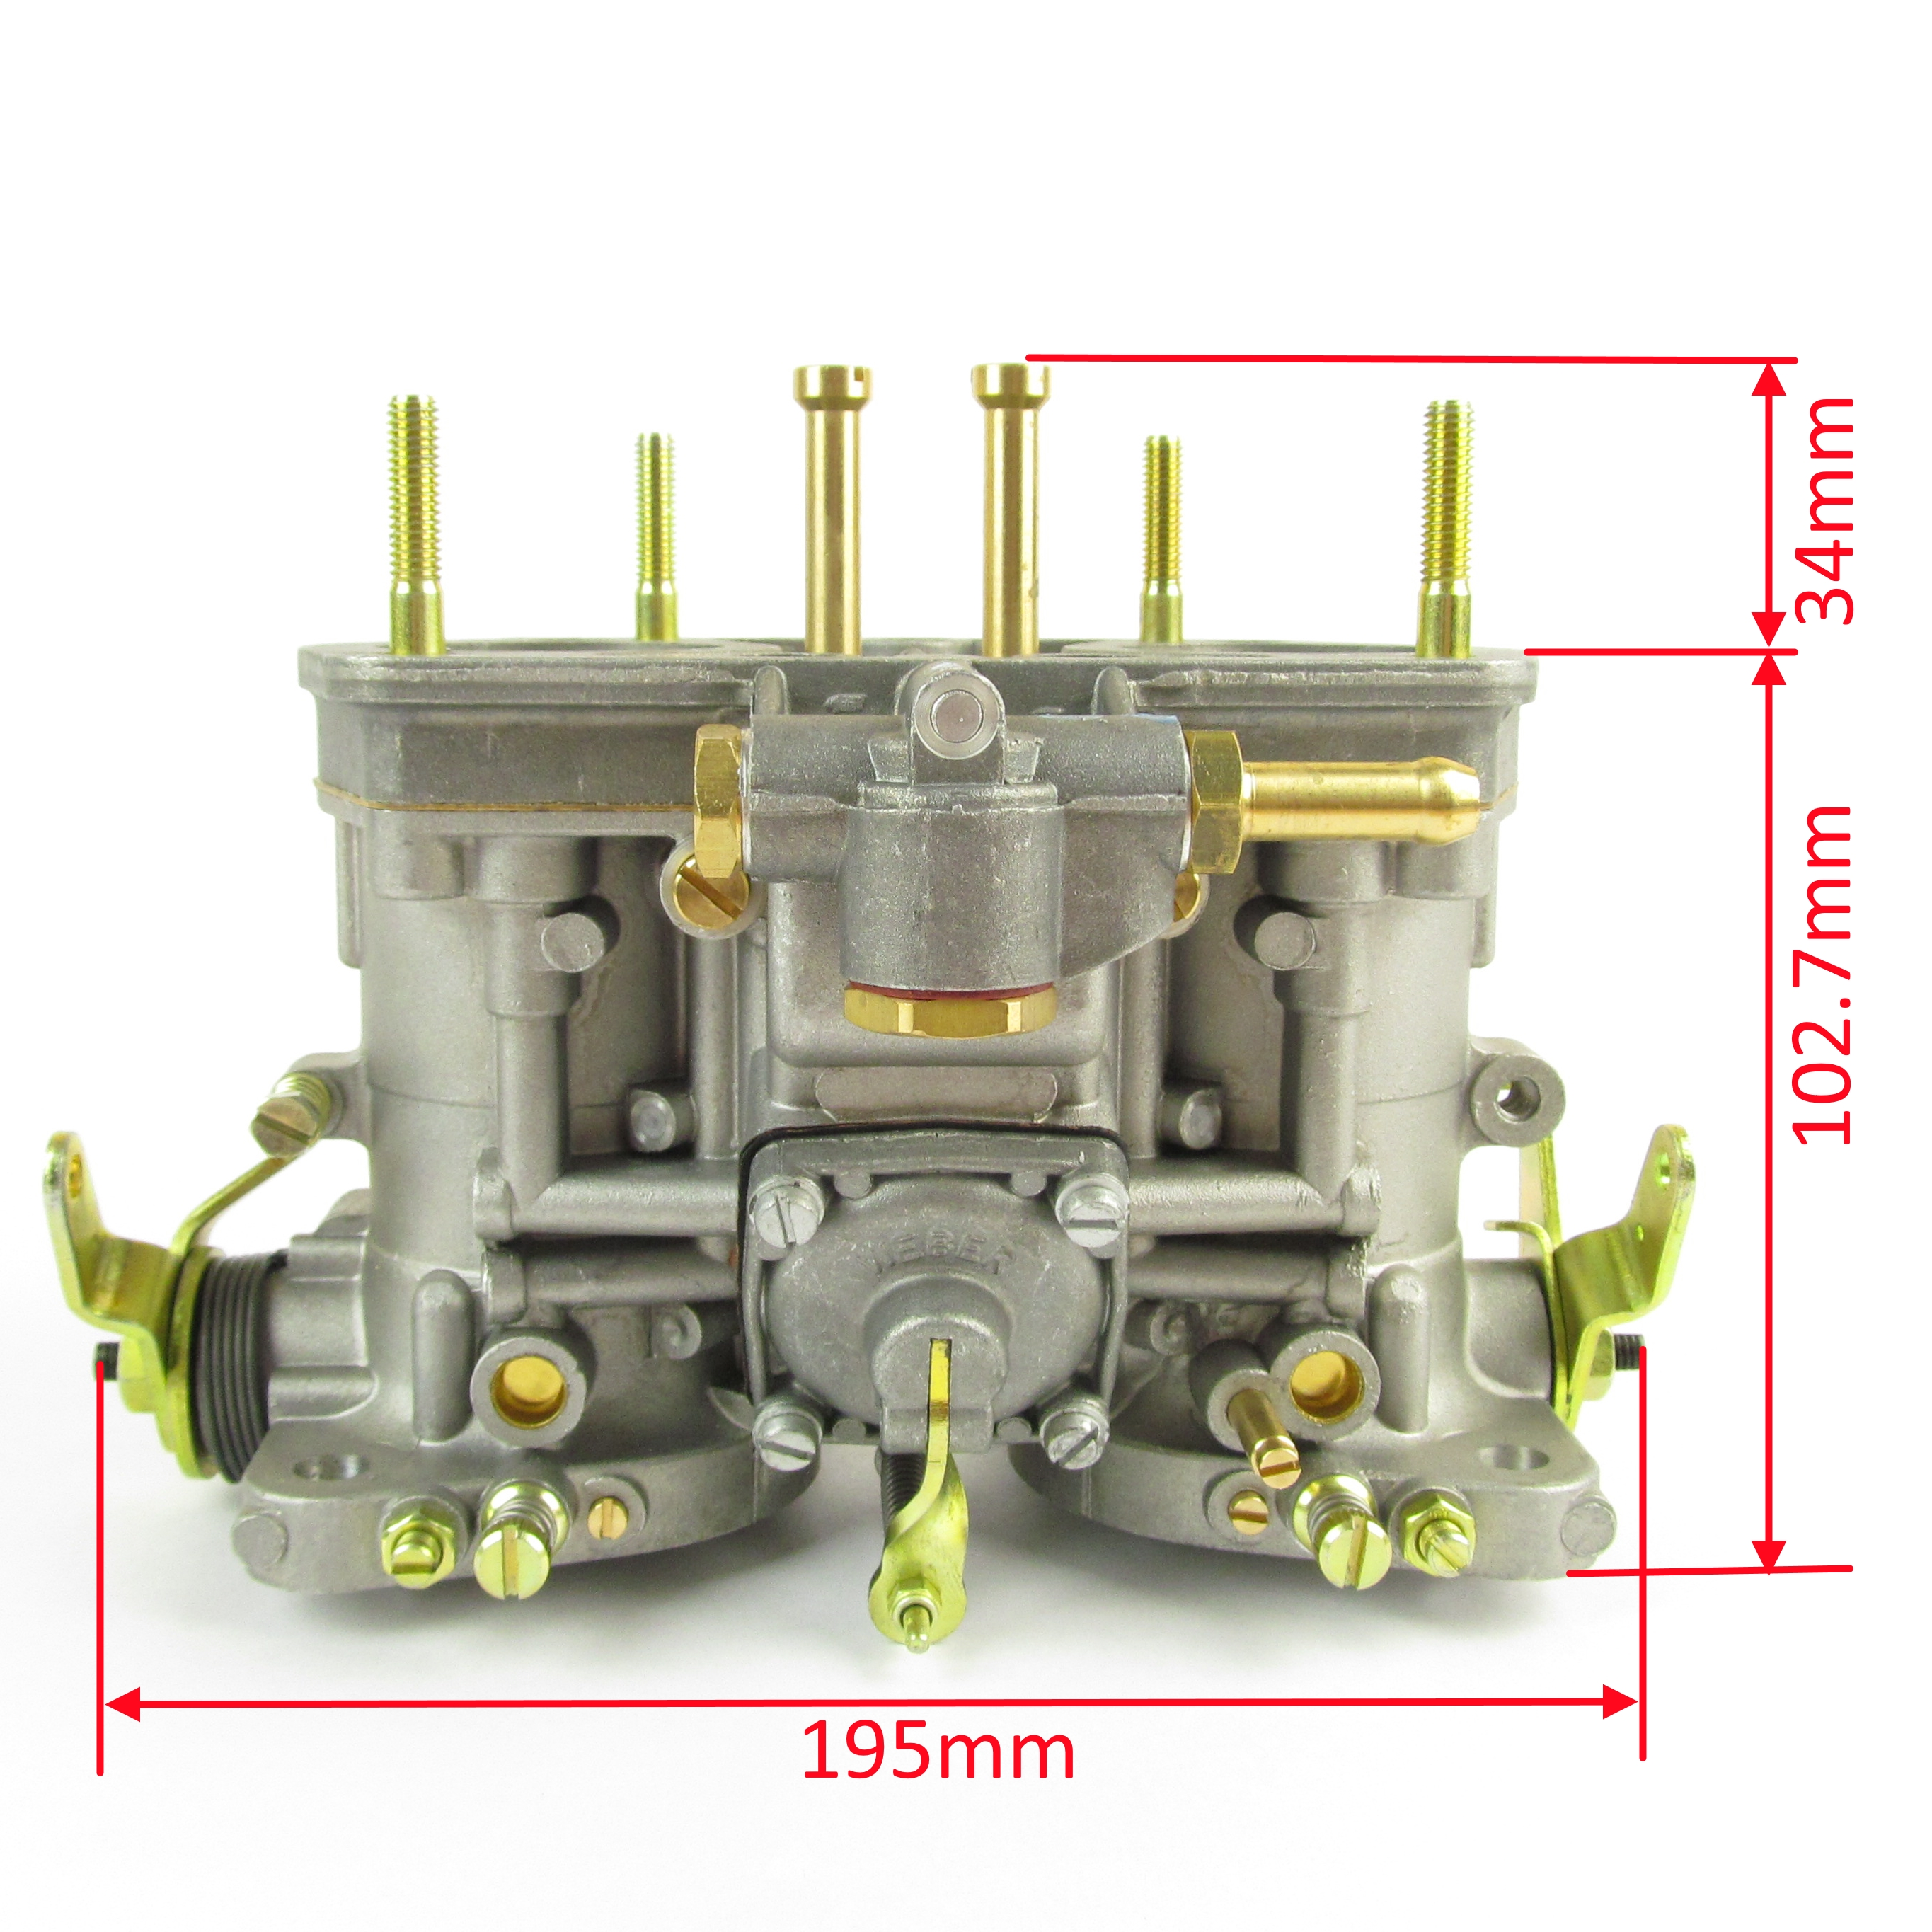 Dubbele Webers Weber Idf 40 Carburettor Without Starter Eurocarb